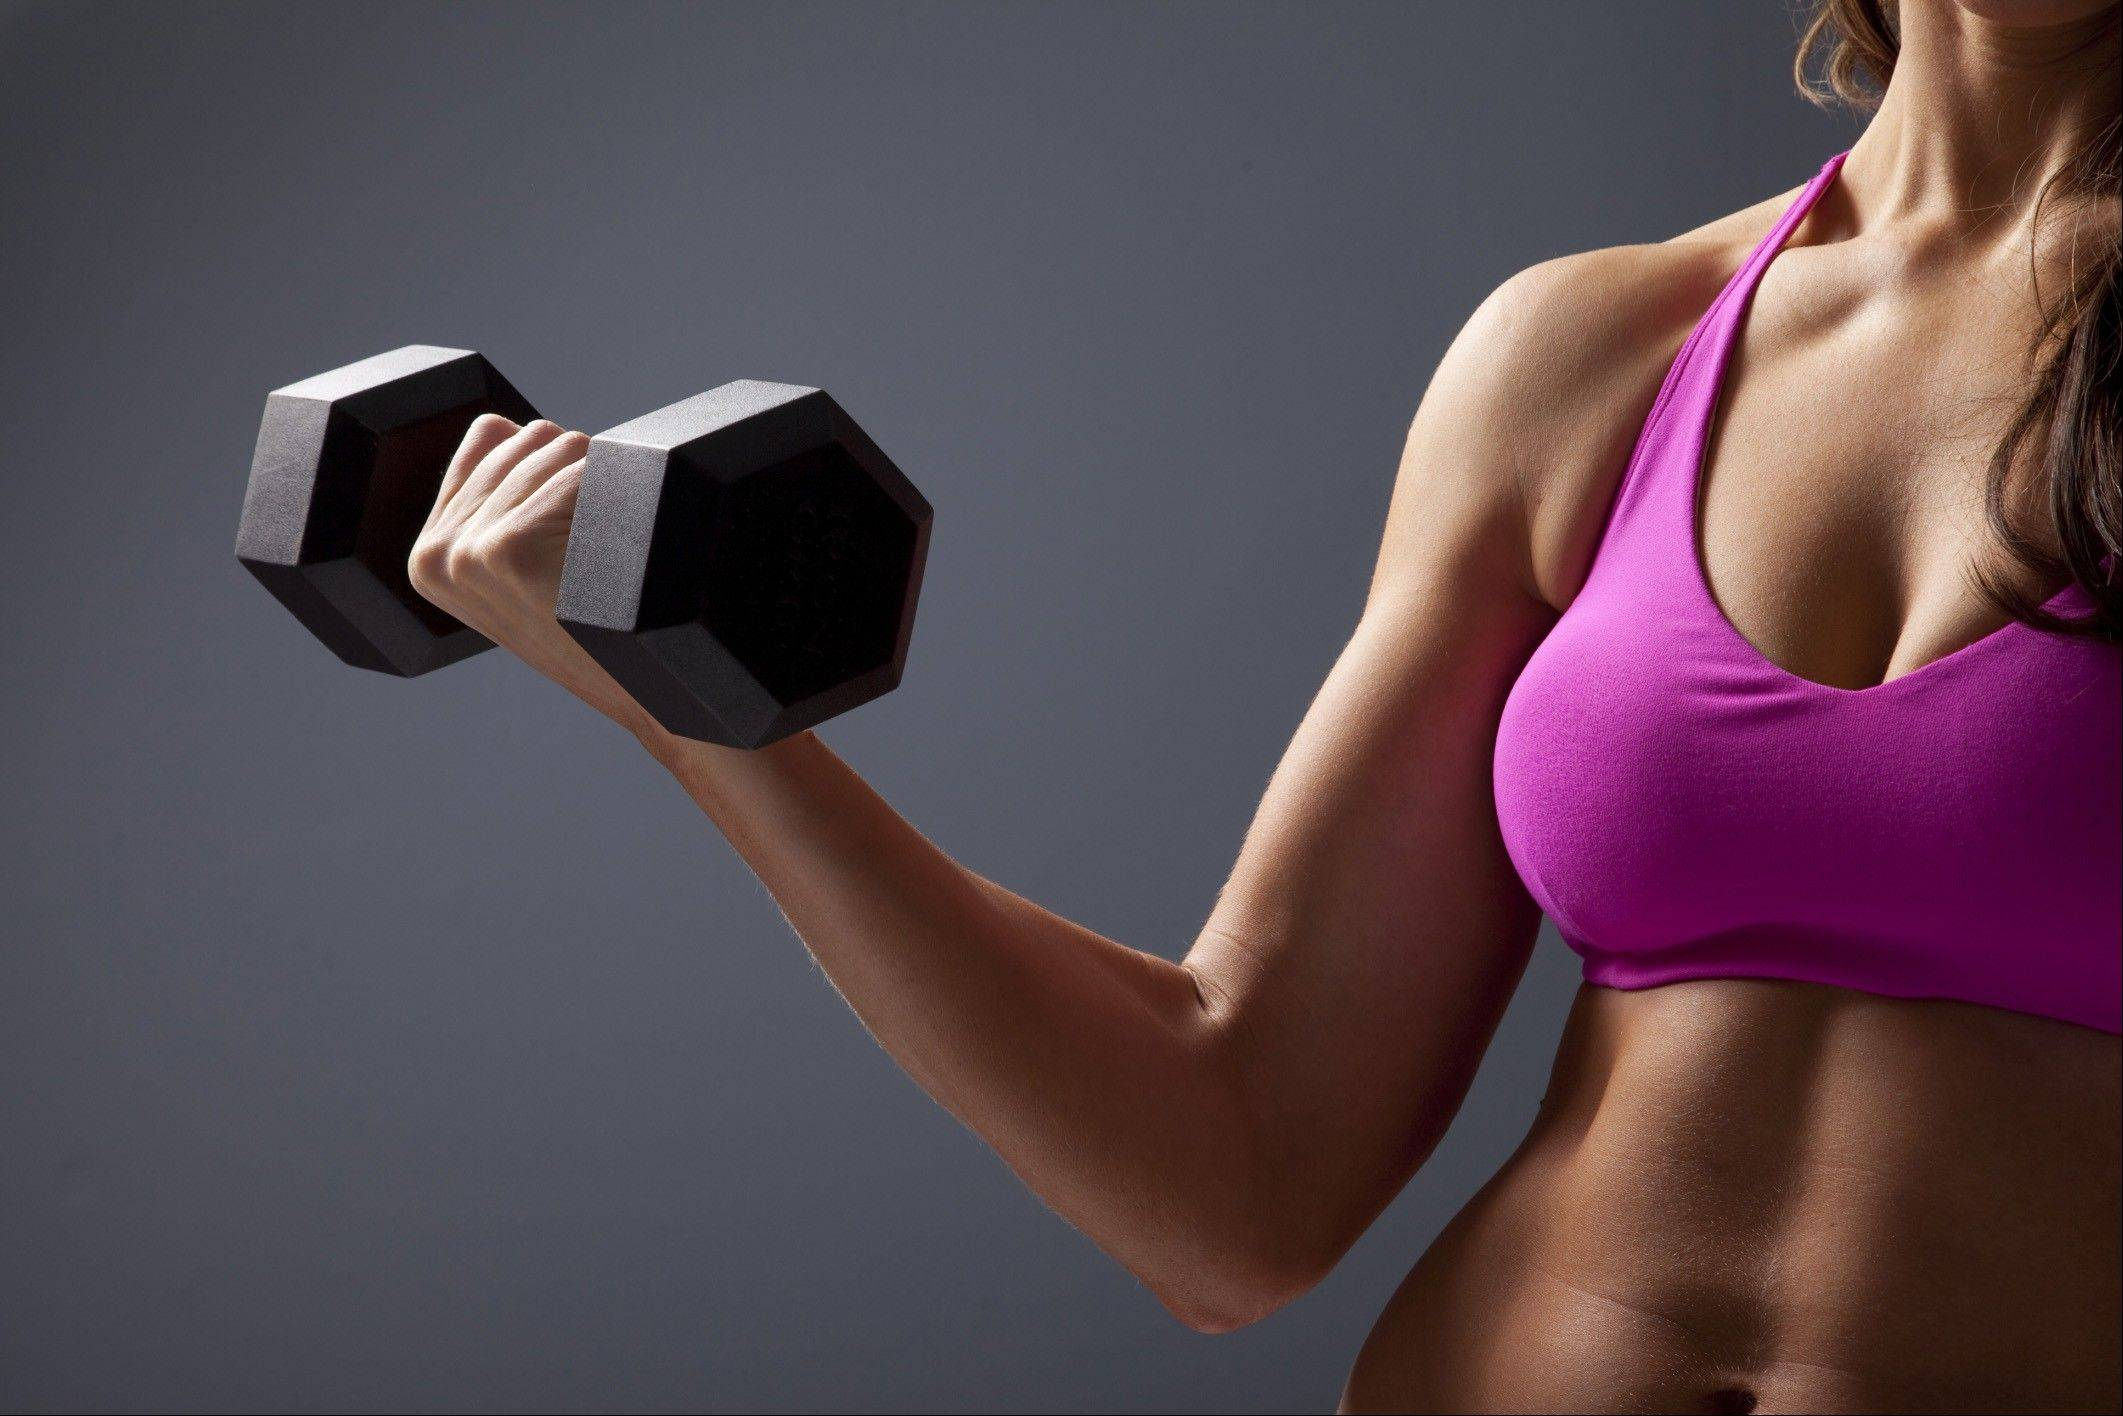 Woman do not have to worry about getting bulky if they lift weights.